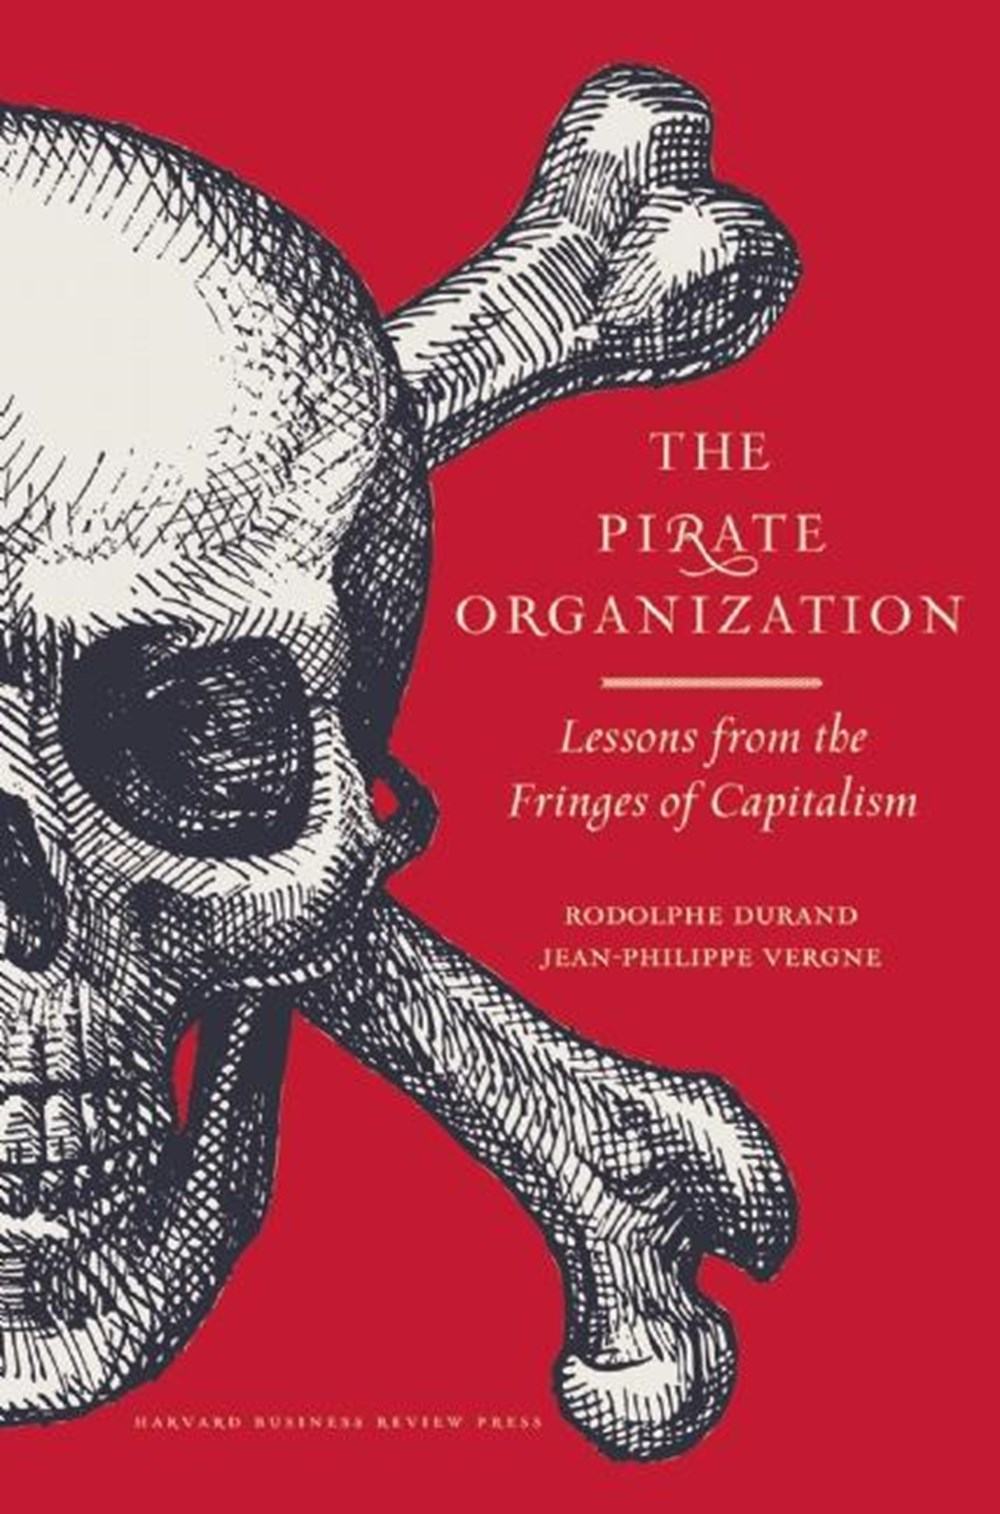 Pirate Organization Lessons from the Fringes of Capitalism